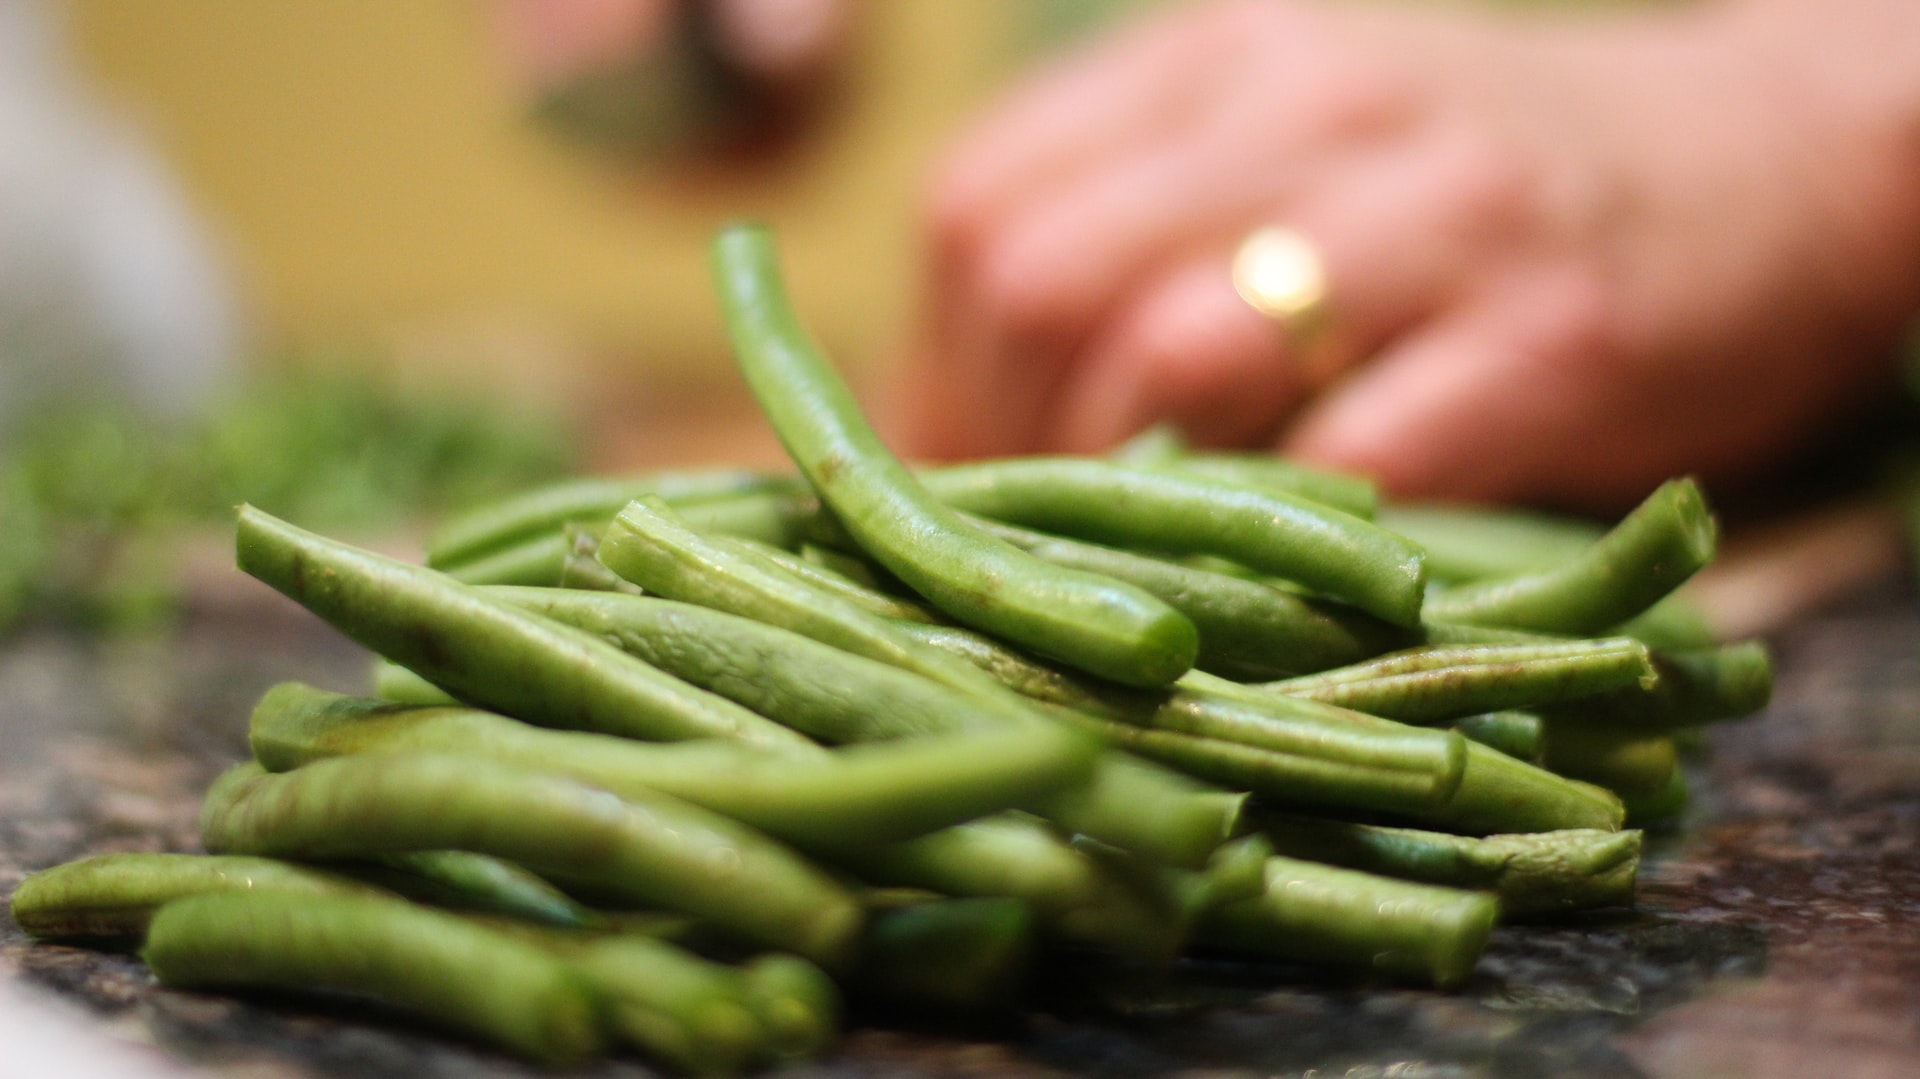 person chopping French beans, whicb are in season in the UK in June